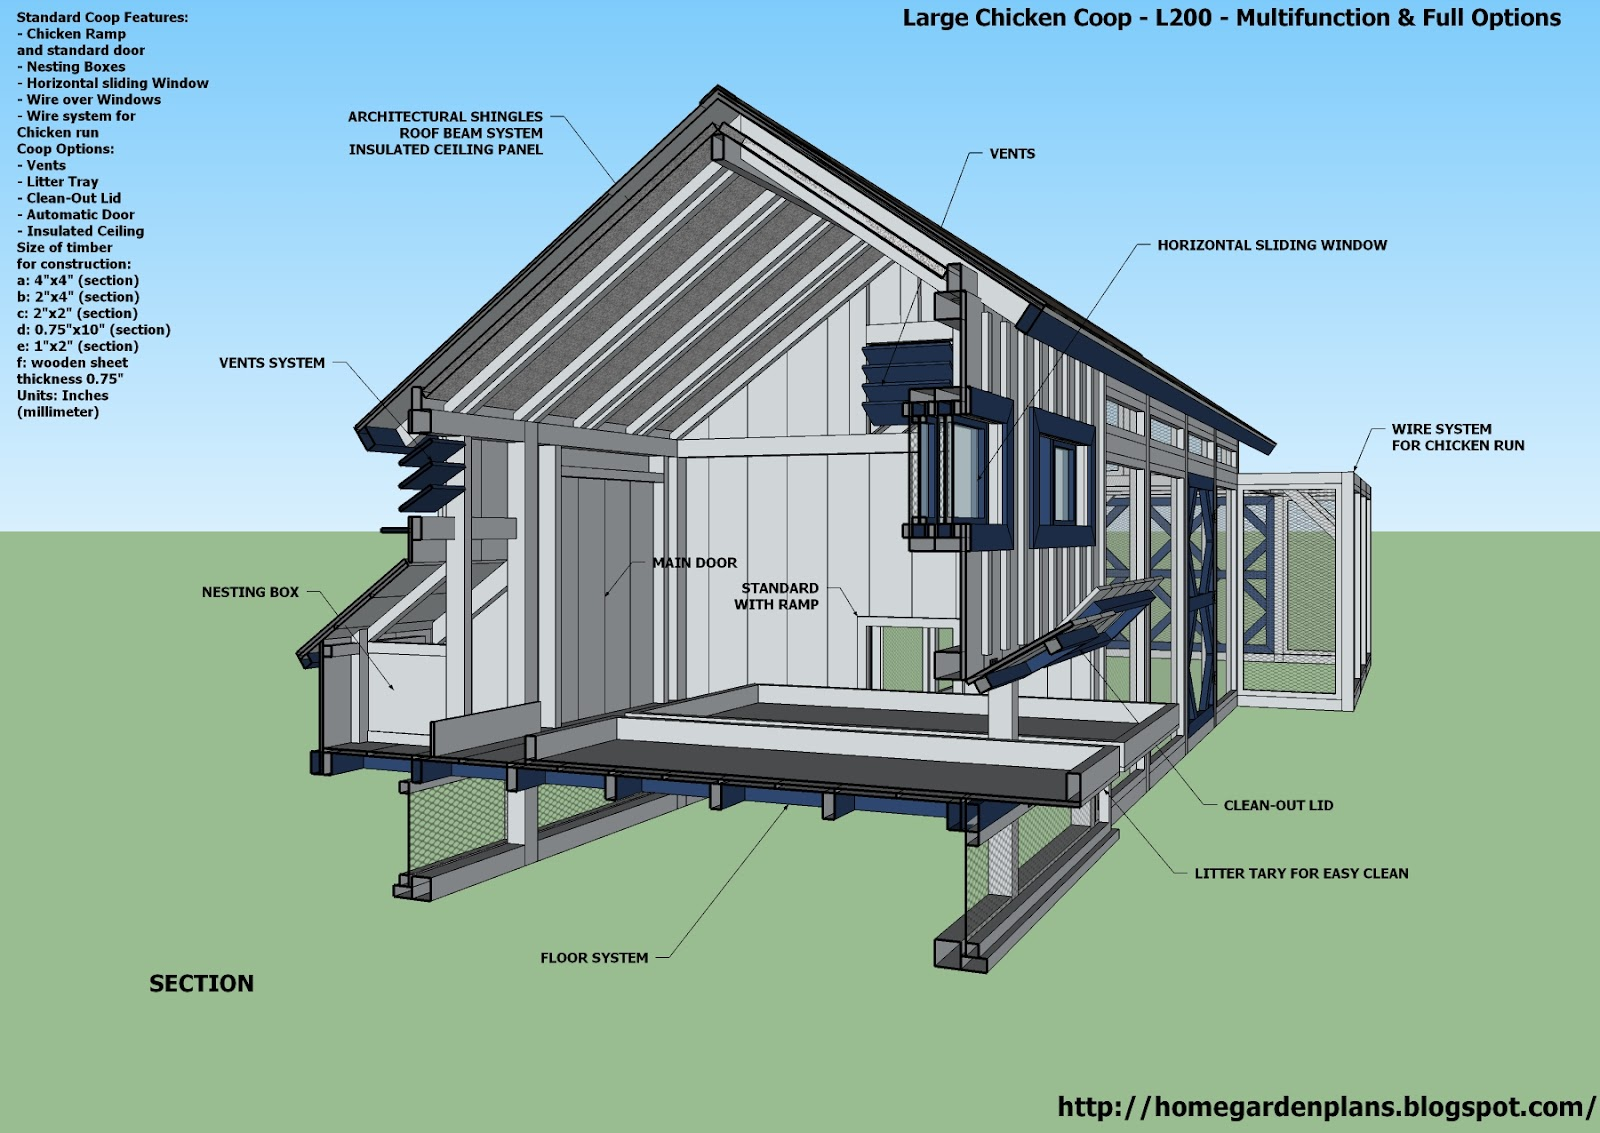 home garden plans  L   Large Chicken Coop Plans   How to Build    home garden plans  L   Large Chicken Coop Plans   How to Build a Chicken Coop    Multifunction  amp  Full Options   Free Chicken Coop Plans